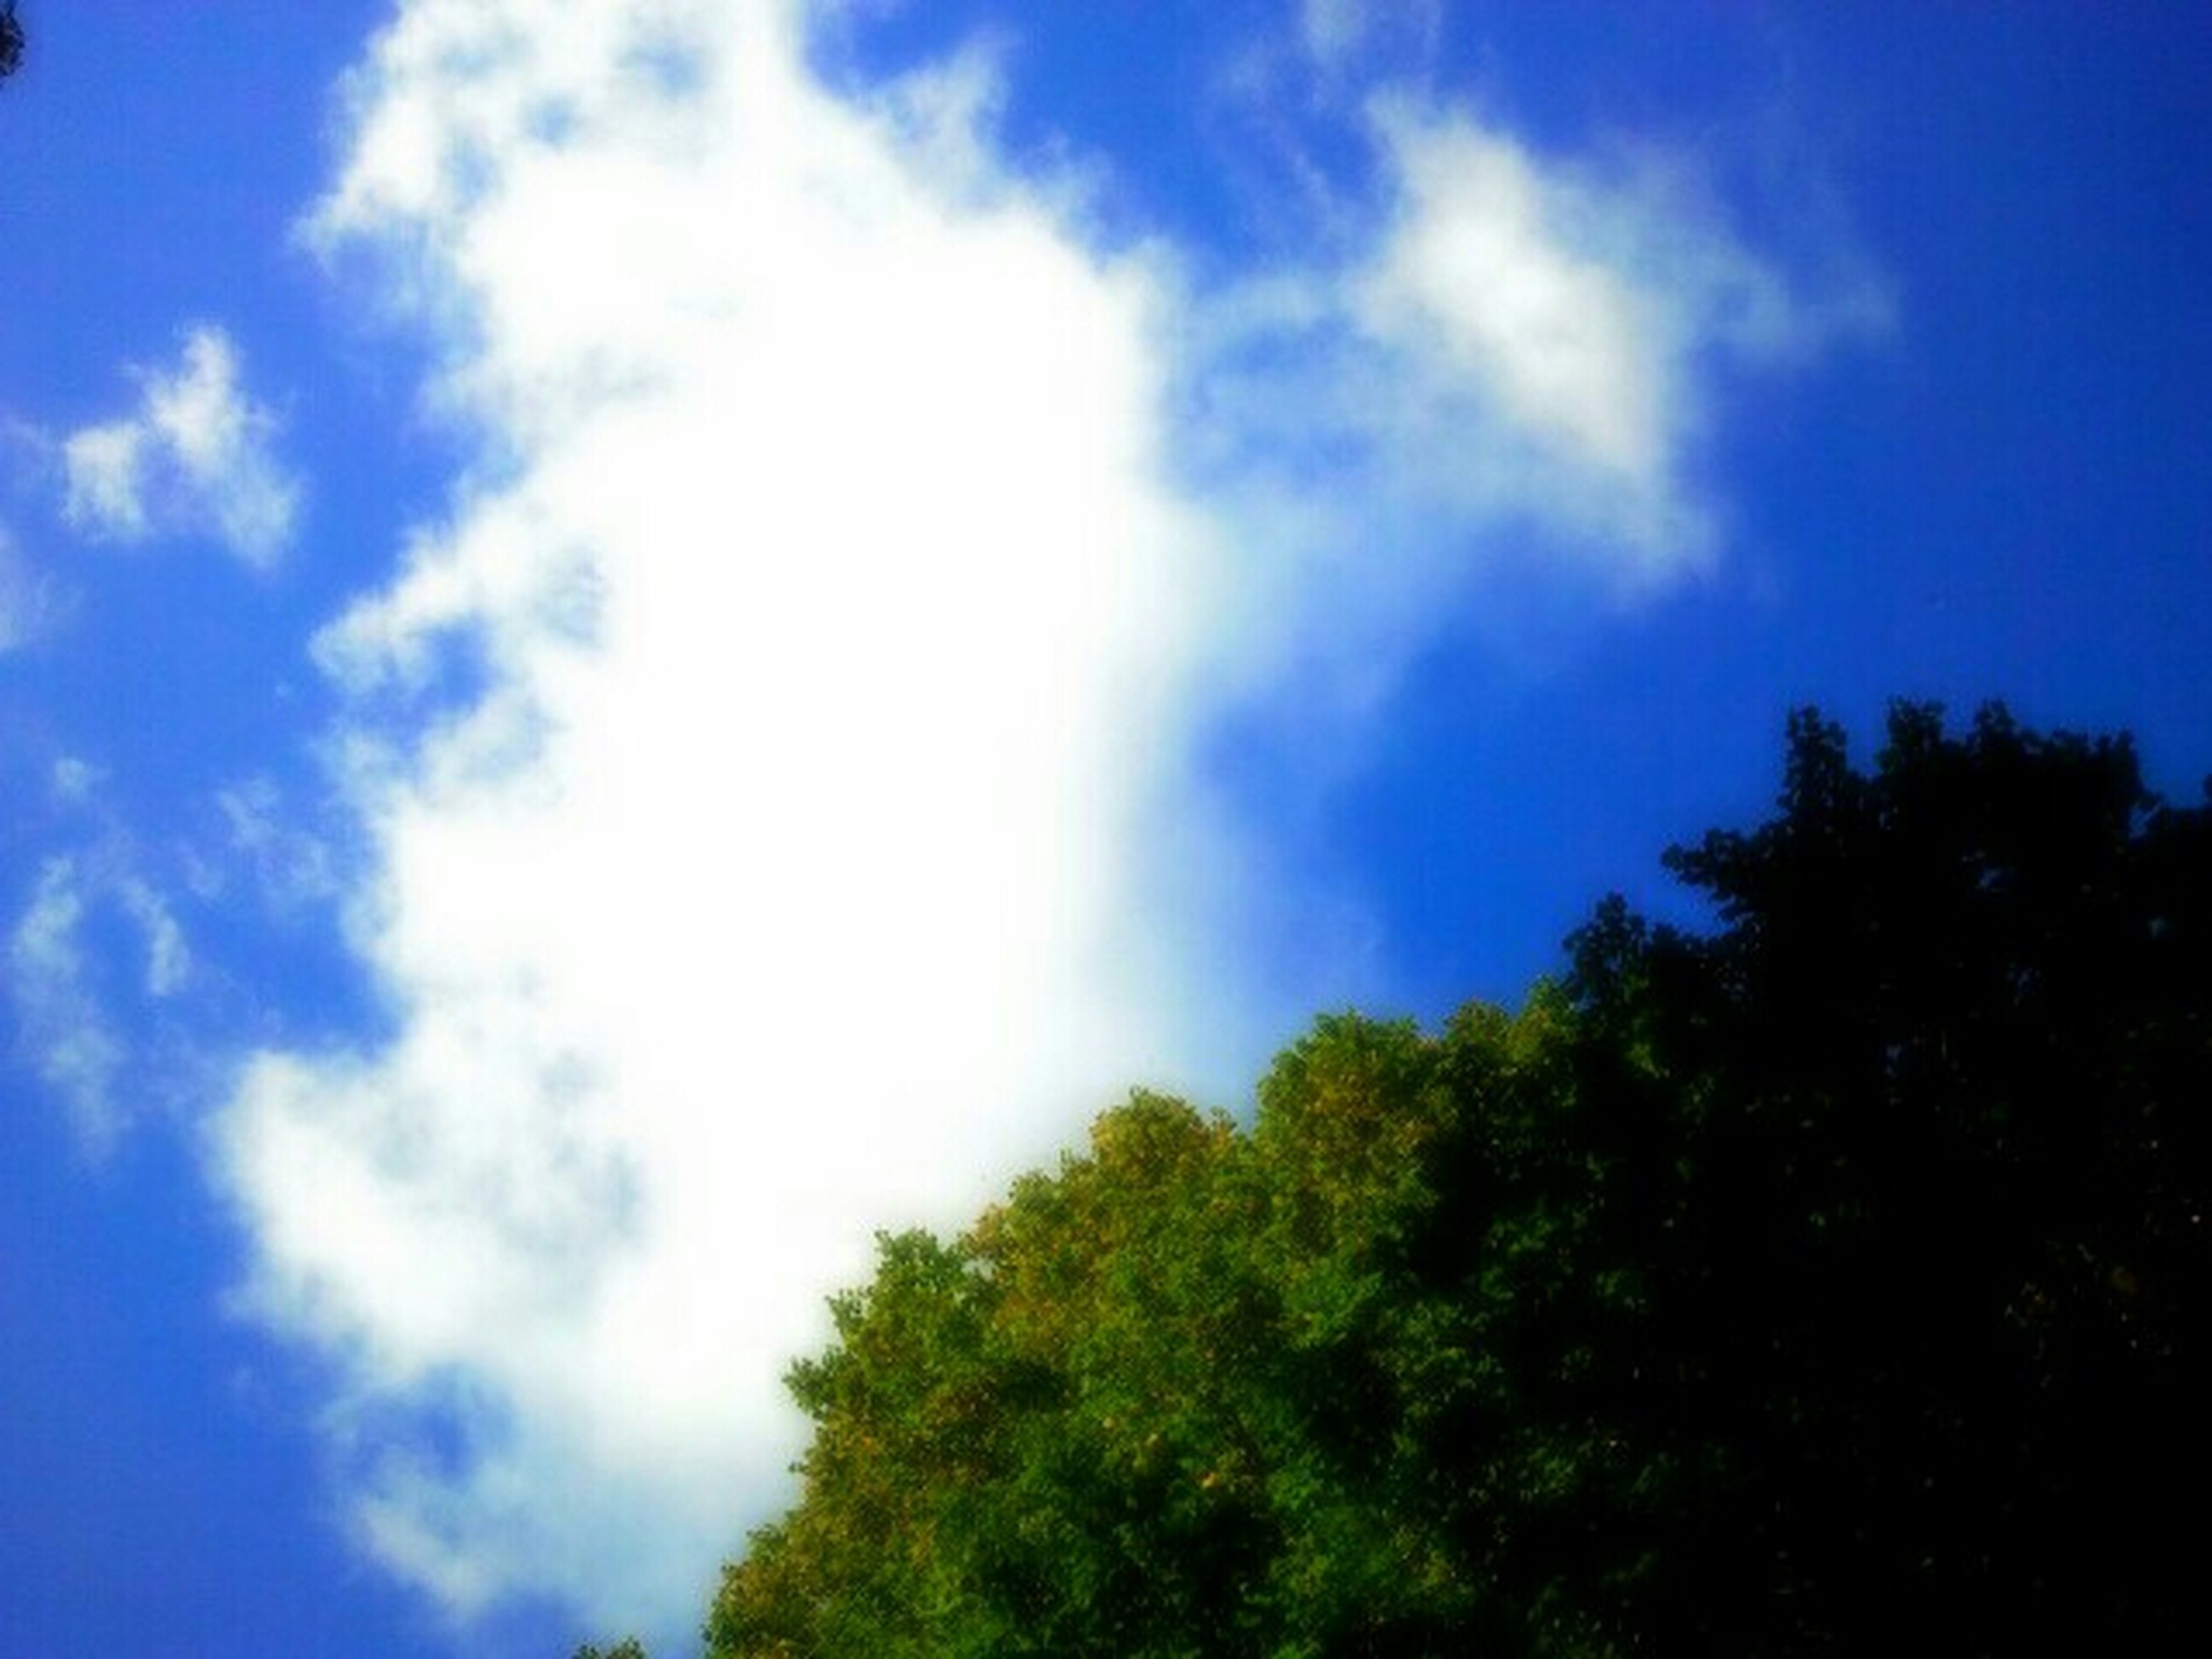 sky, low angle view, blue, tree, tranquility, cloud - sky, beauty in nature, nature, scenics, tranquil scene, cloud, growth, cloudy, day, outdoors, idyllic, no people, green color, sunlight, high section